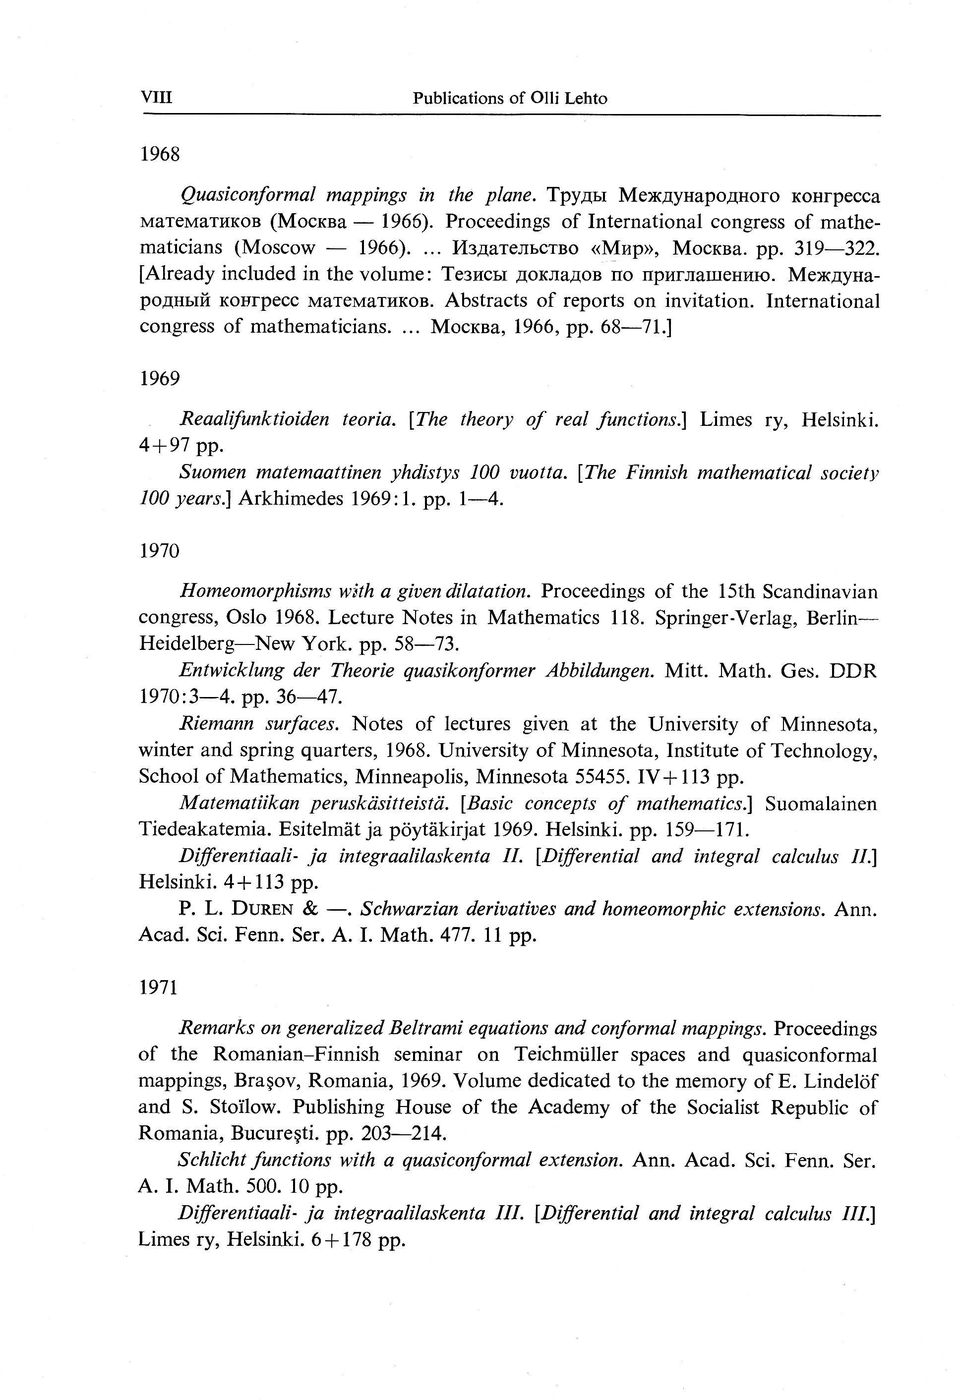 International congress of mathematicians.... Mocrna, 1966,pp.6871.1 1969 Reaalifunktioiden teoria. lthe theory 4*97 pp. of real functions.f Limes ry, Helsinki.